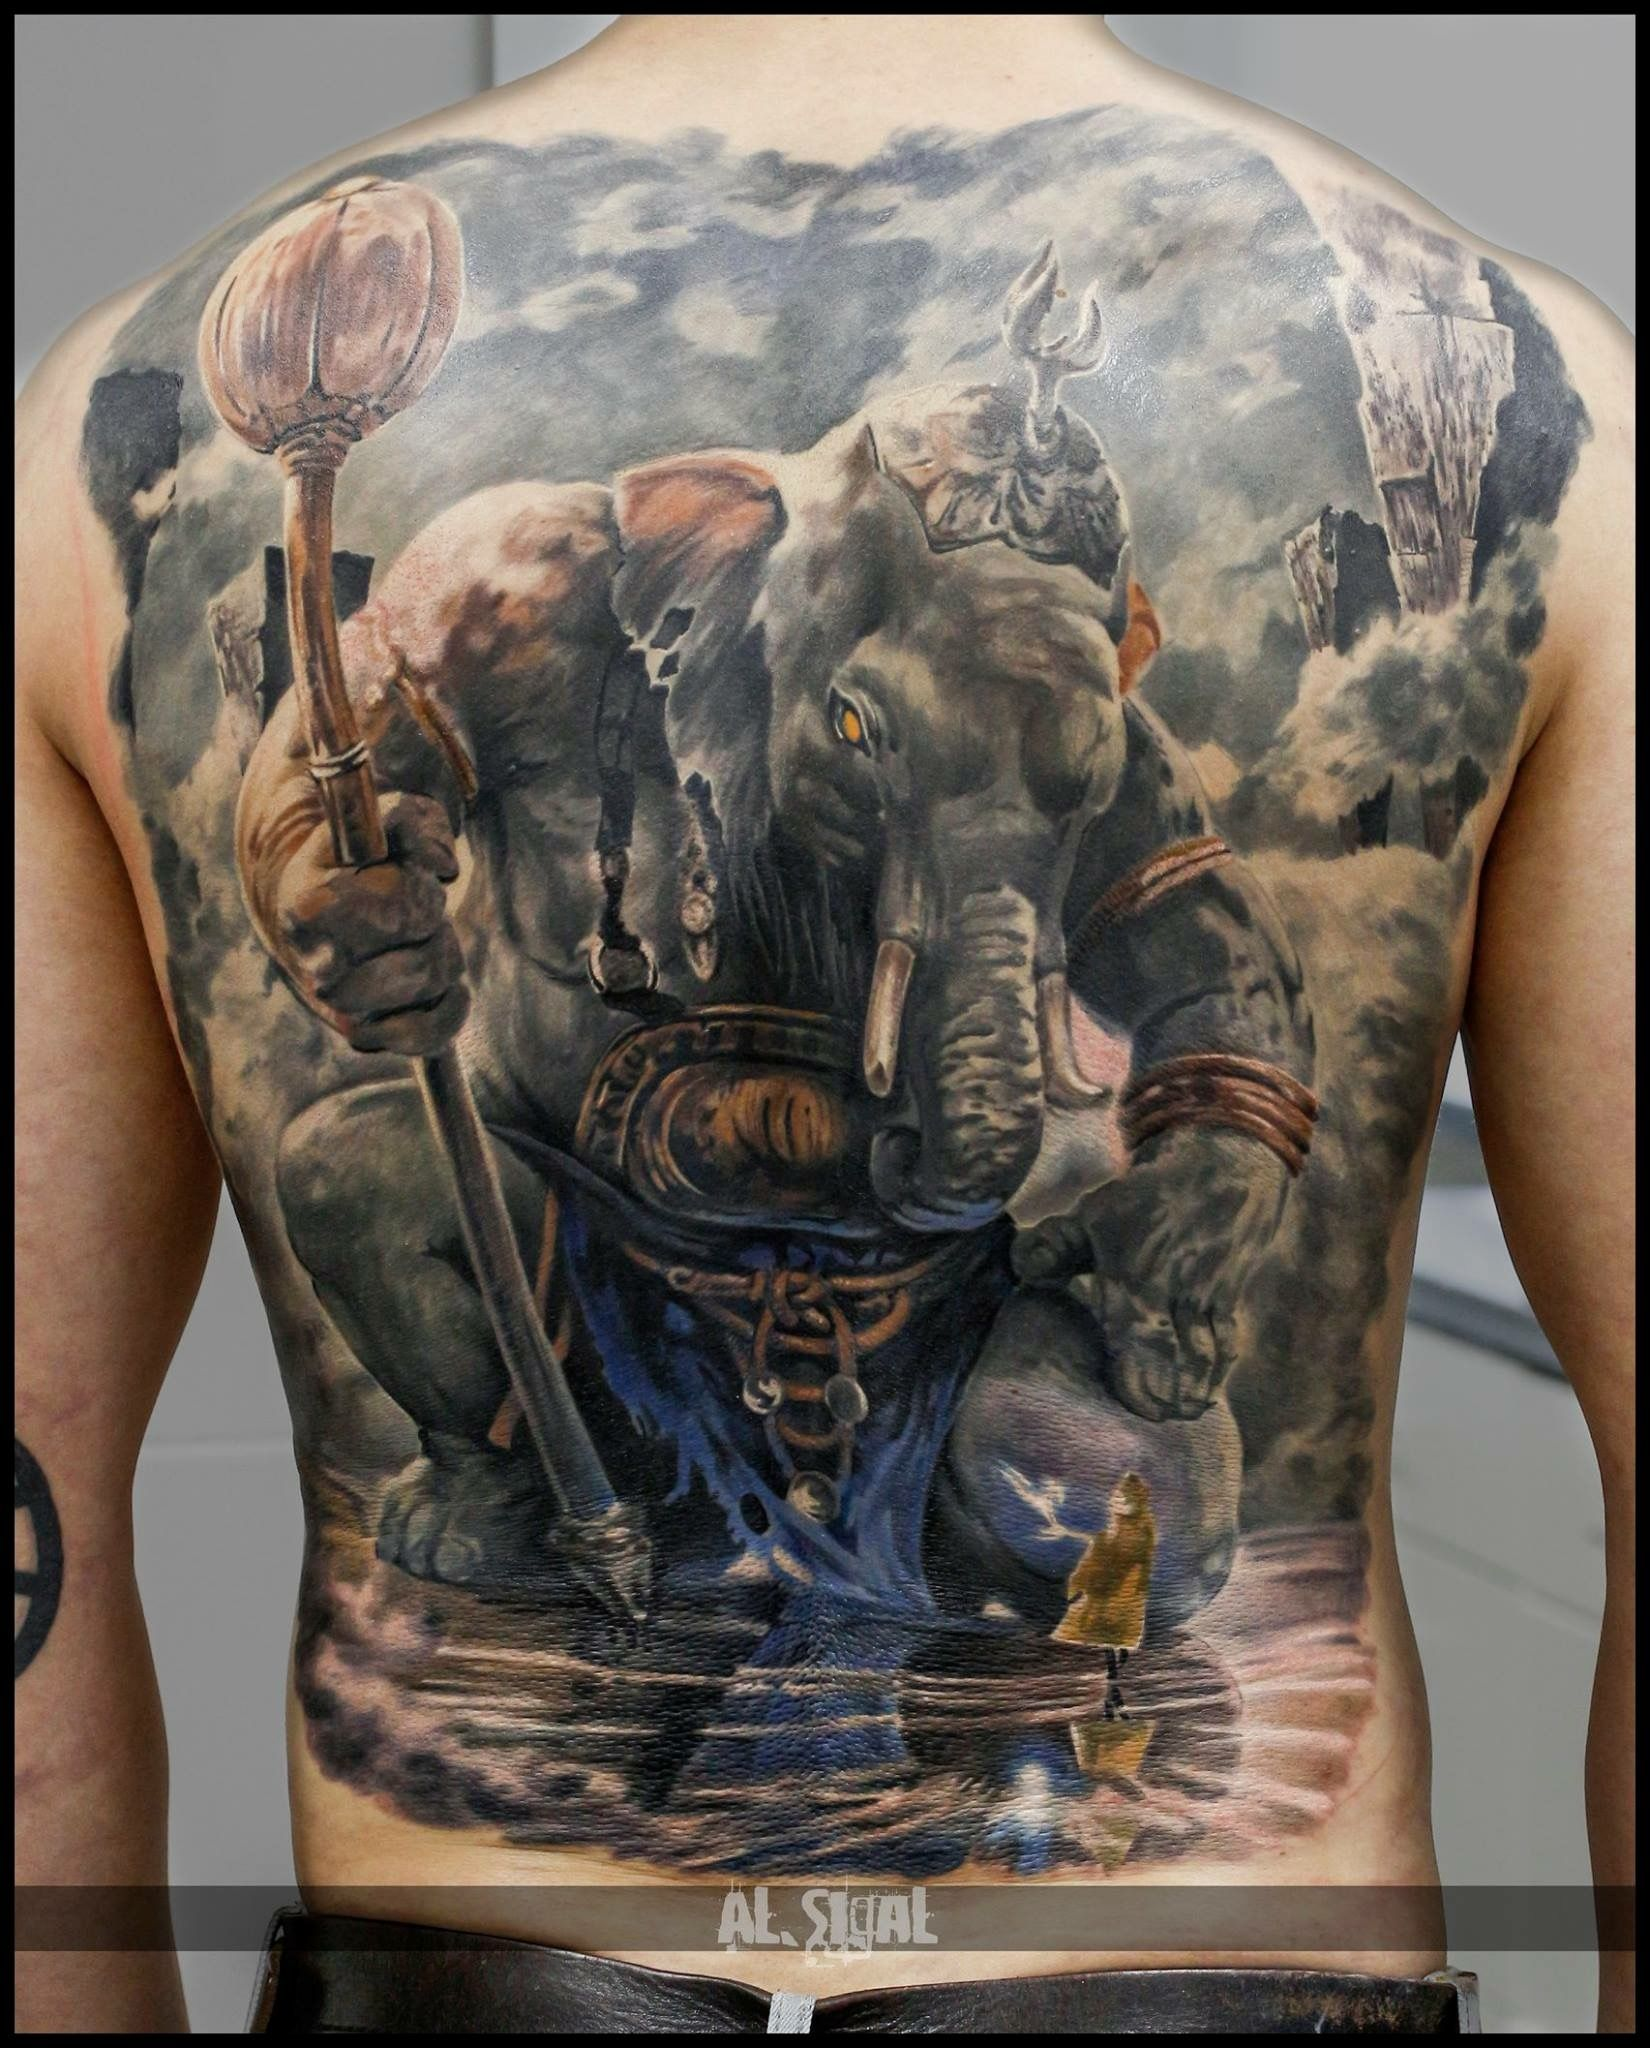 Cool tattoo designs for back pin by rob immediata on tattoos  pinterest  tattoo tatoo and tatting